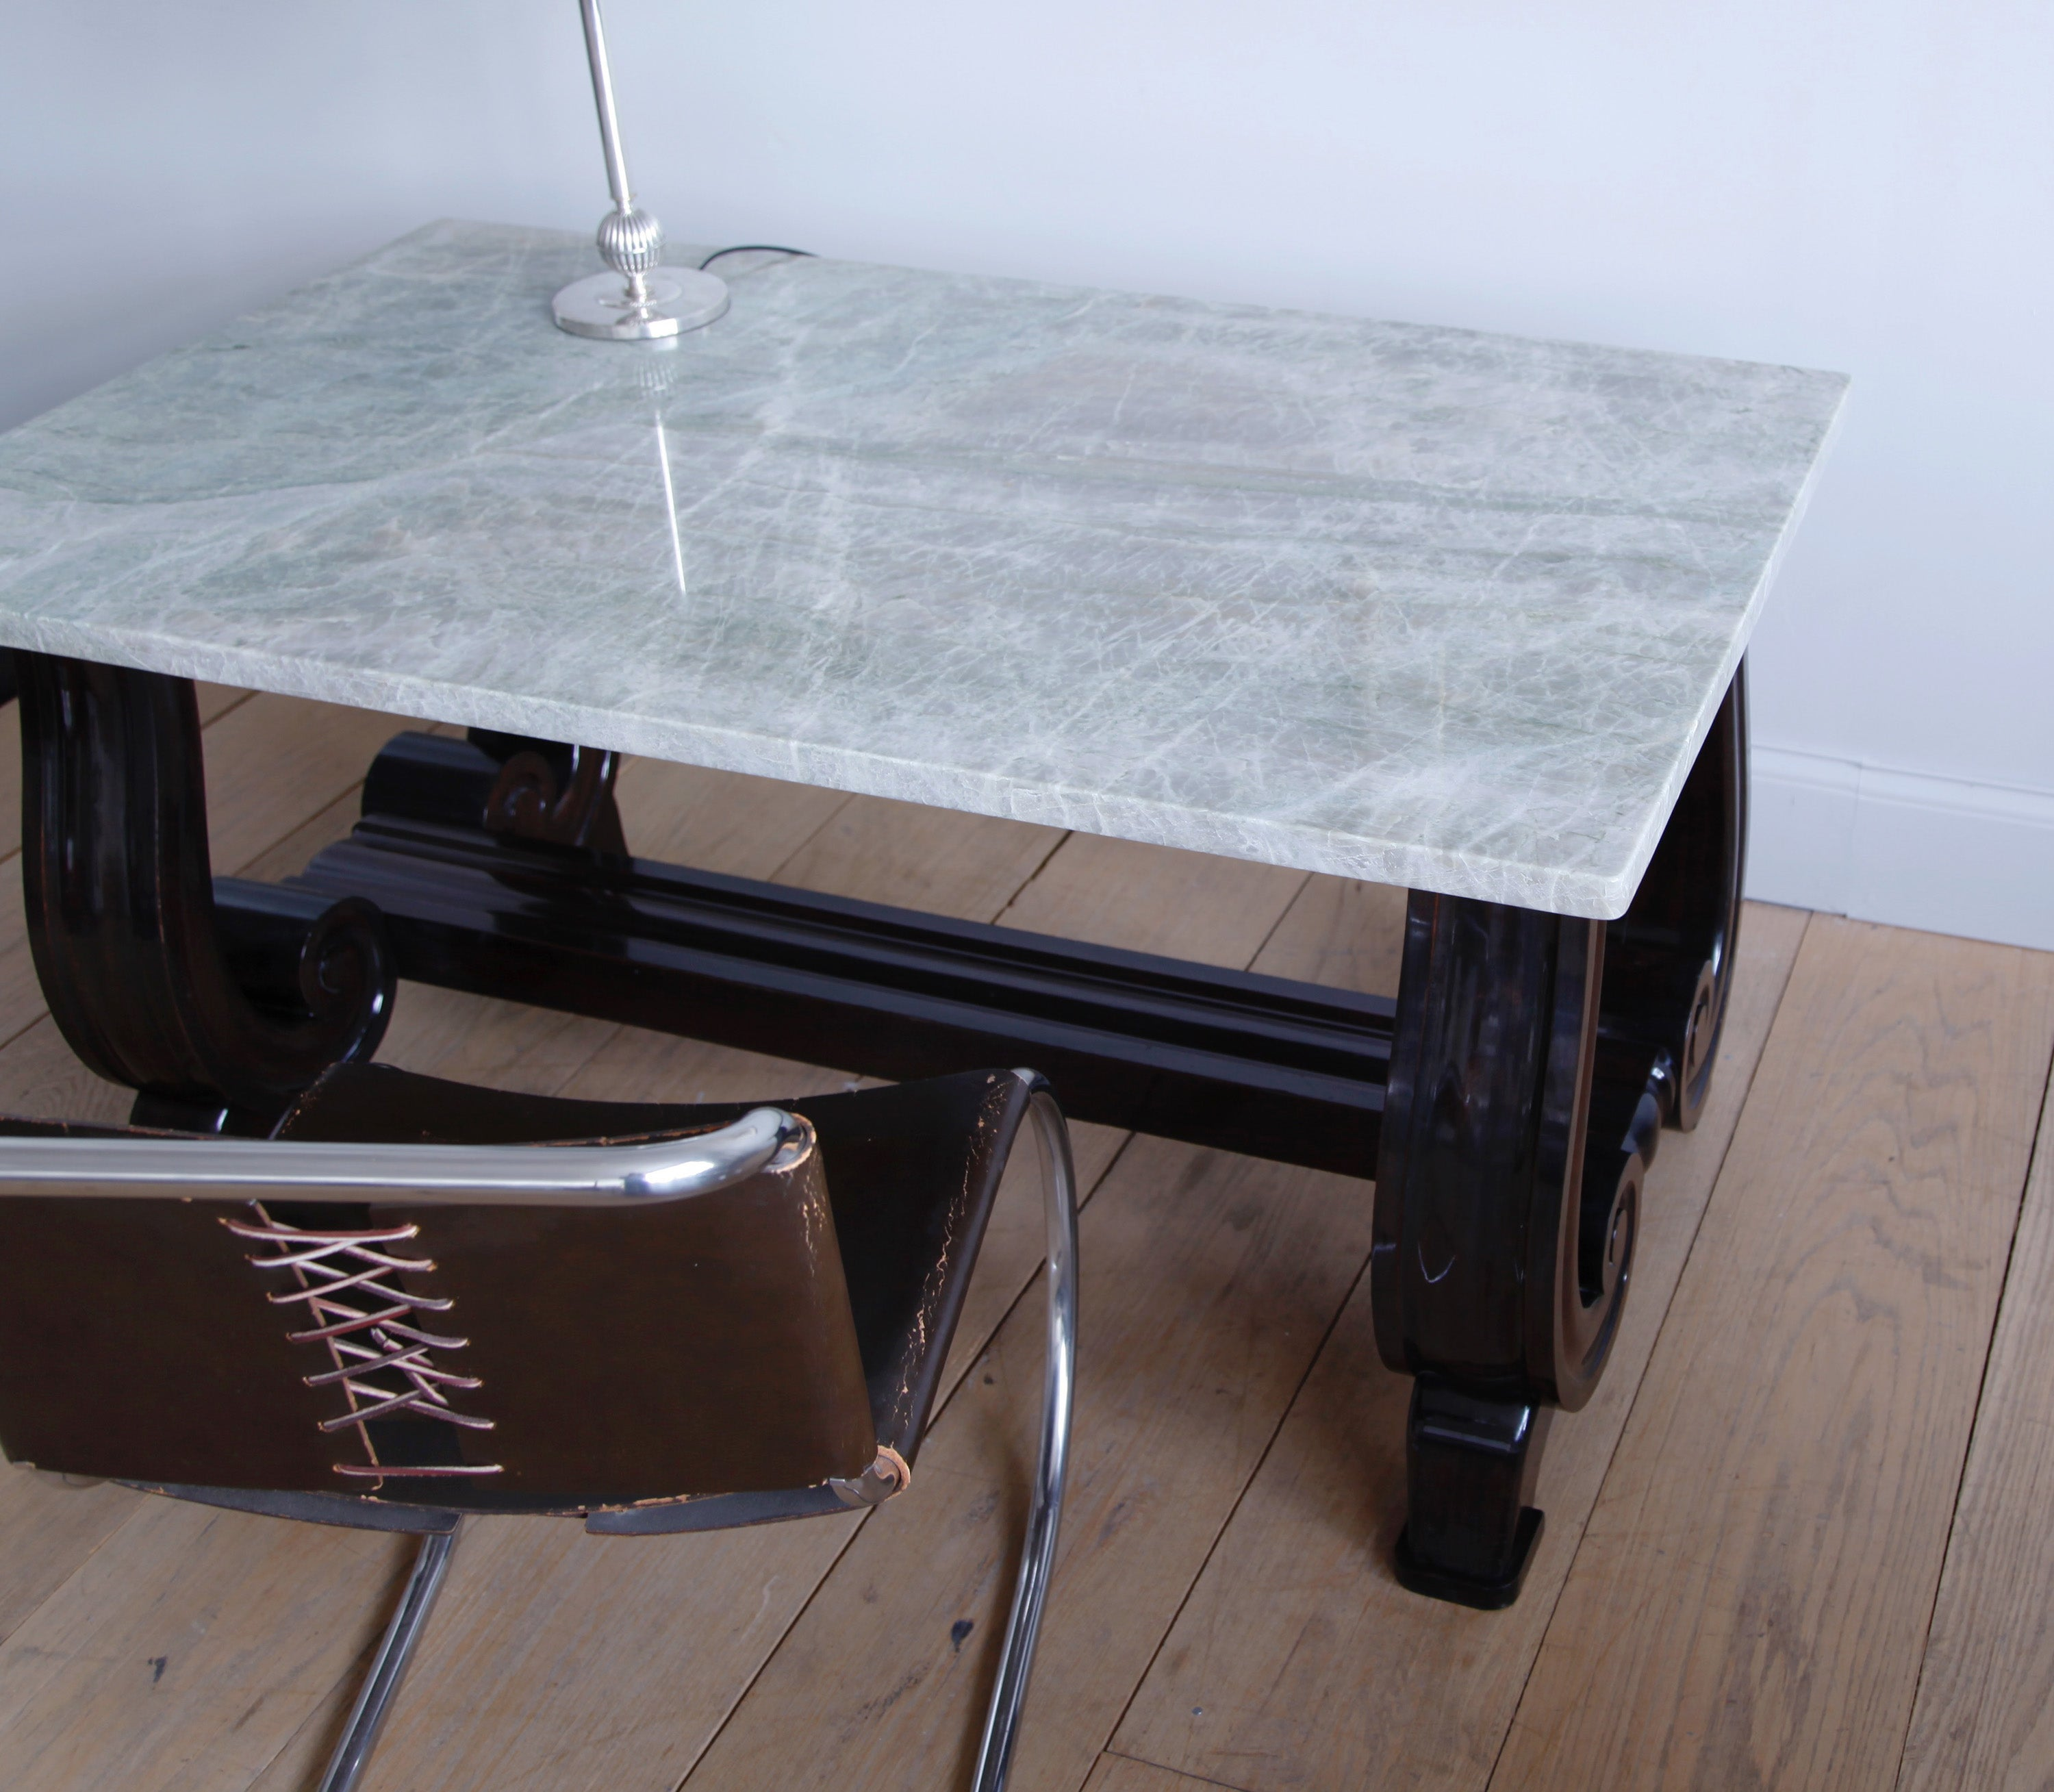 Mahogany Scroll-Base Table with Brazilian Quartz Top For Sale at 1stdibs